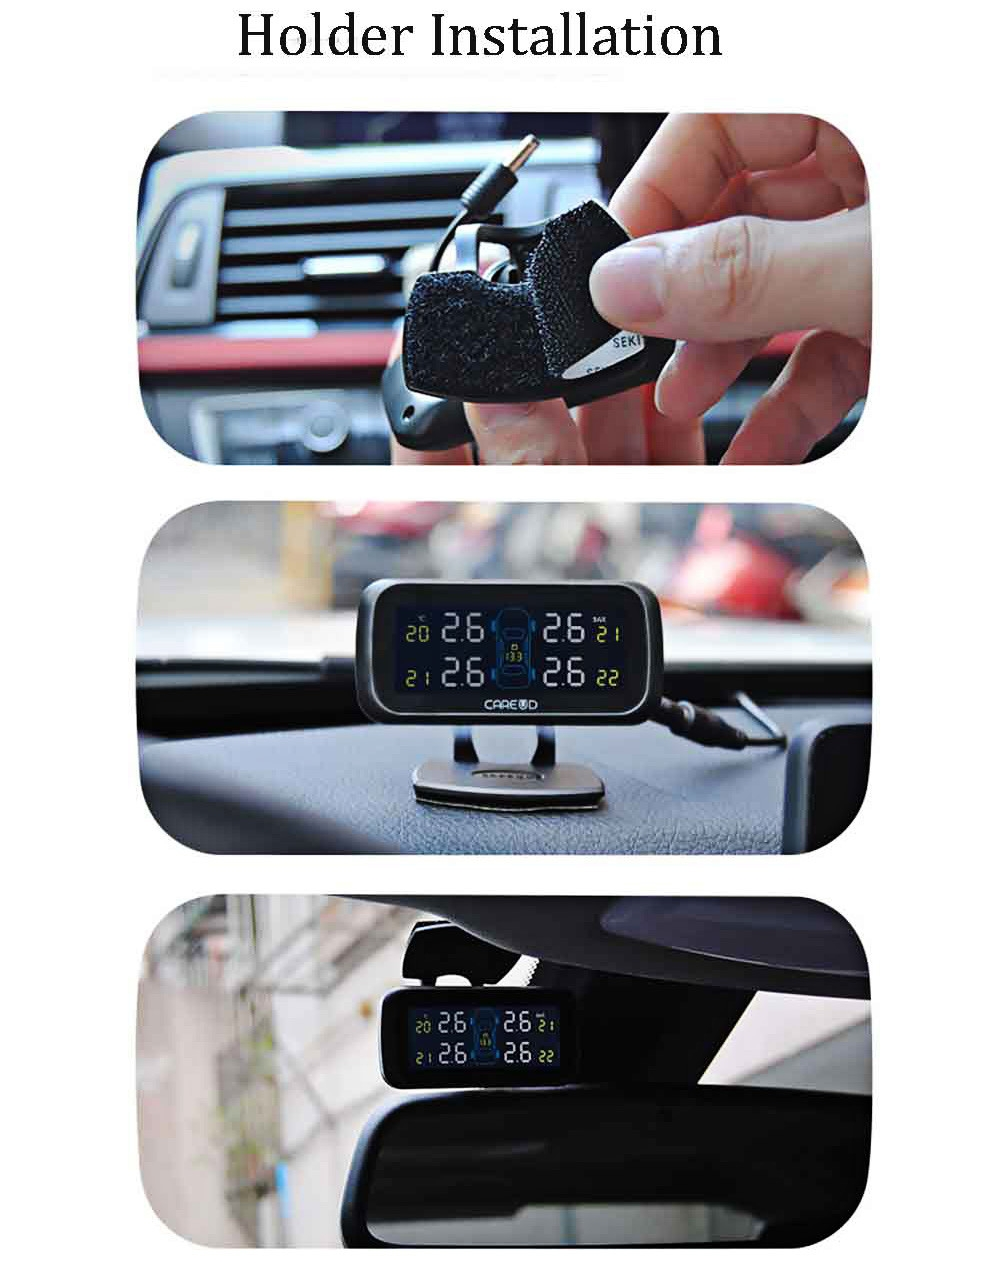 U903 433.92MHz Wireless TPMS Tire Pressure Monitoring System 4 External Sensors